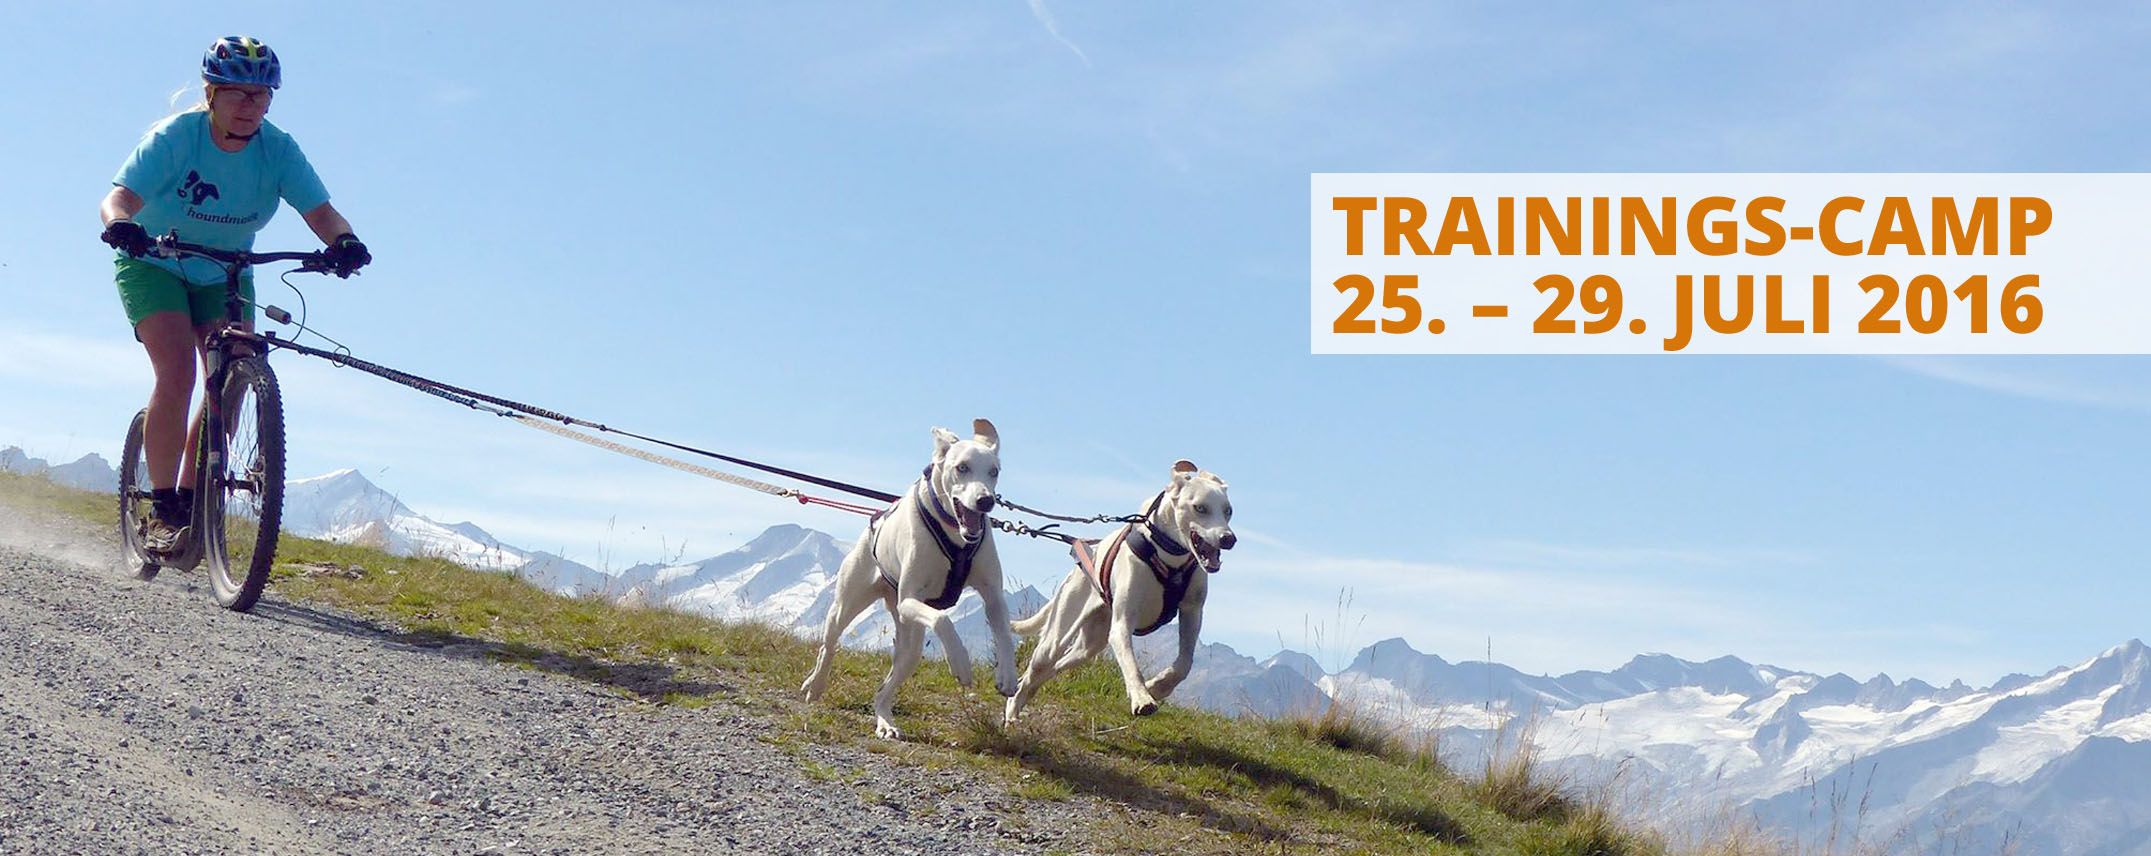 dogandsport_trainingscamp